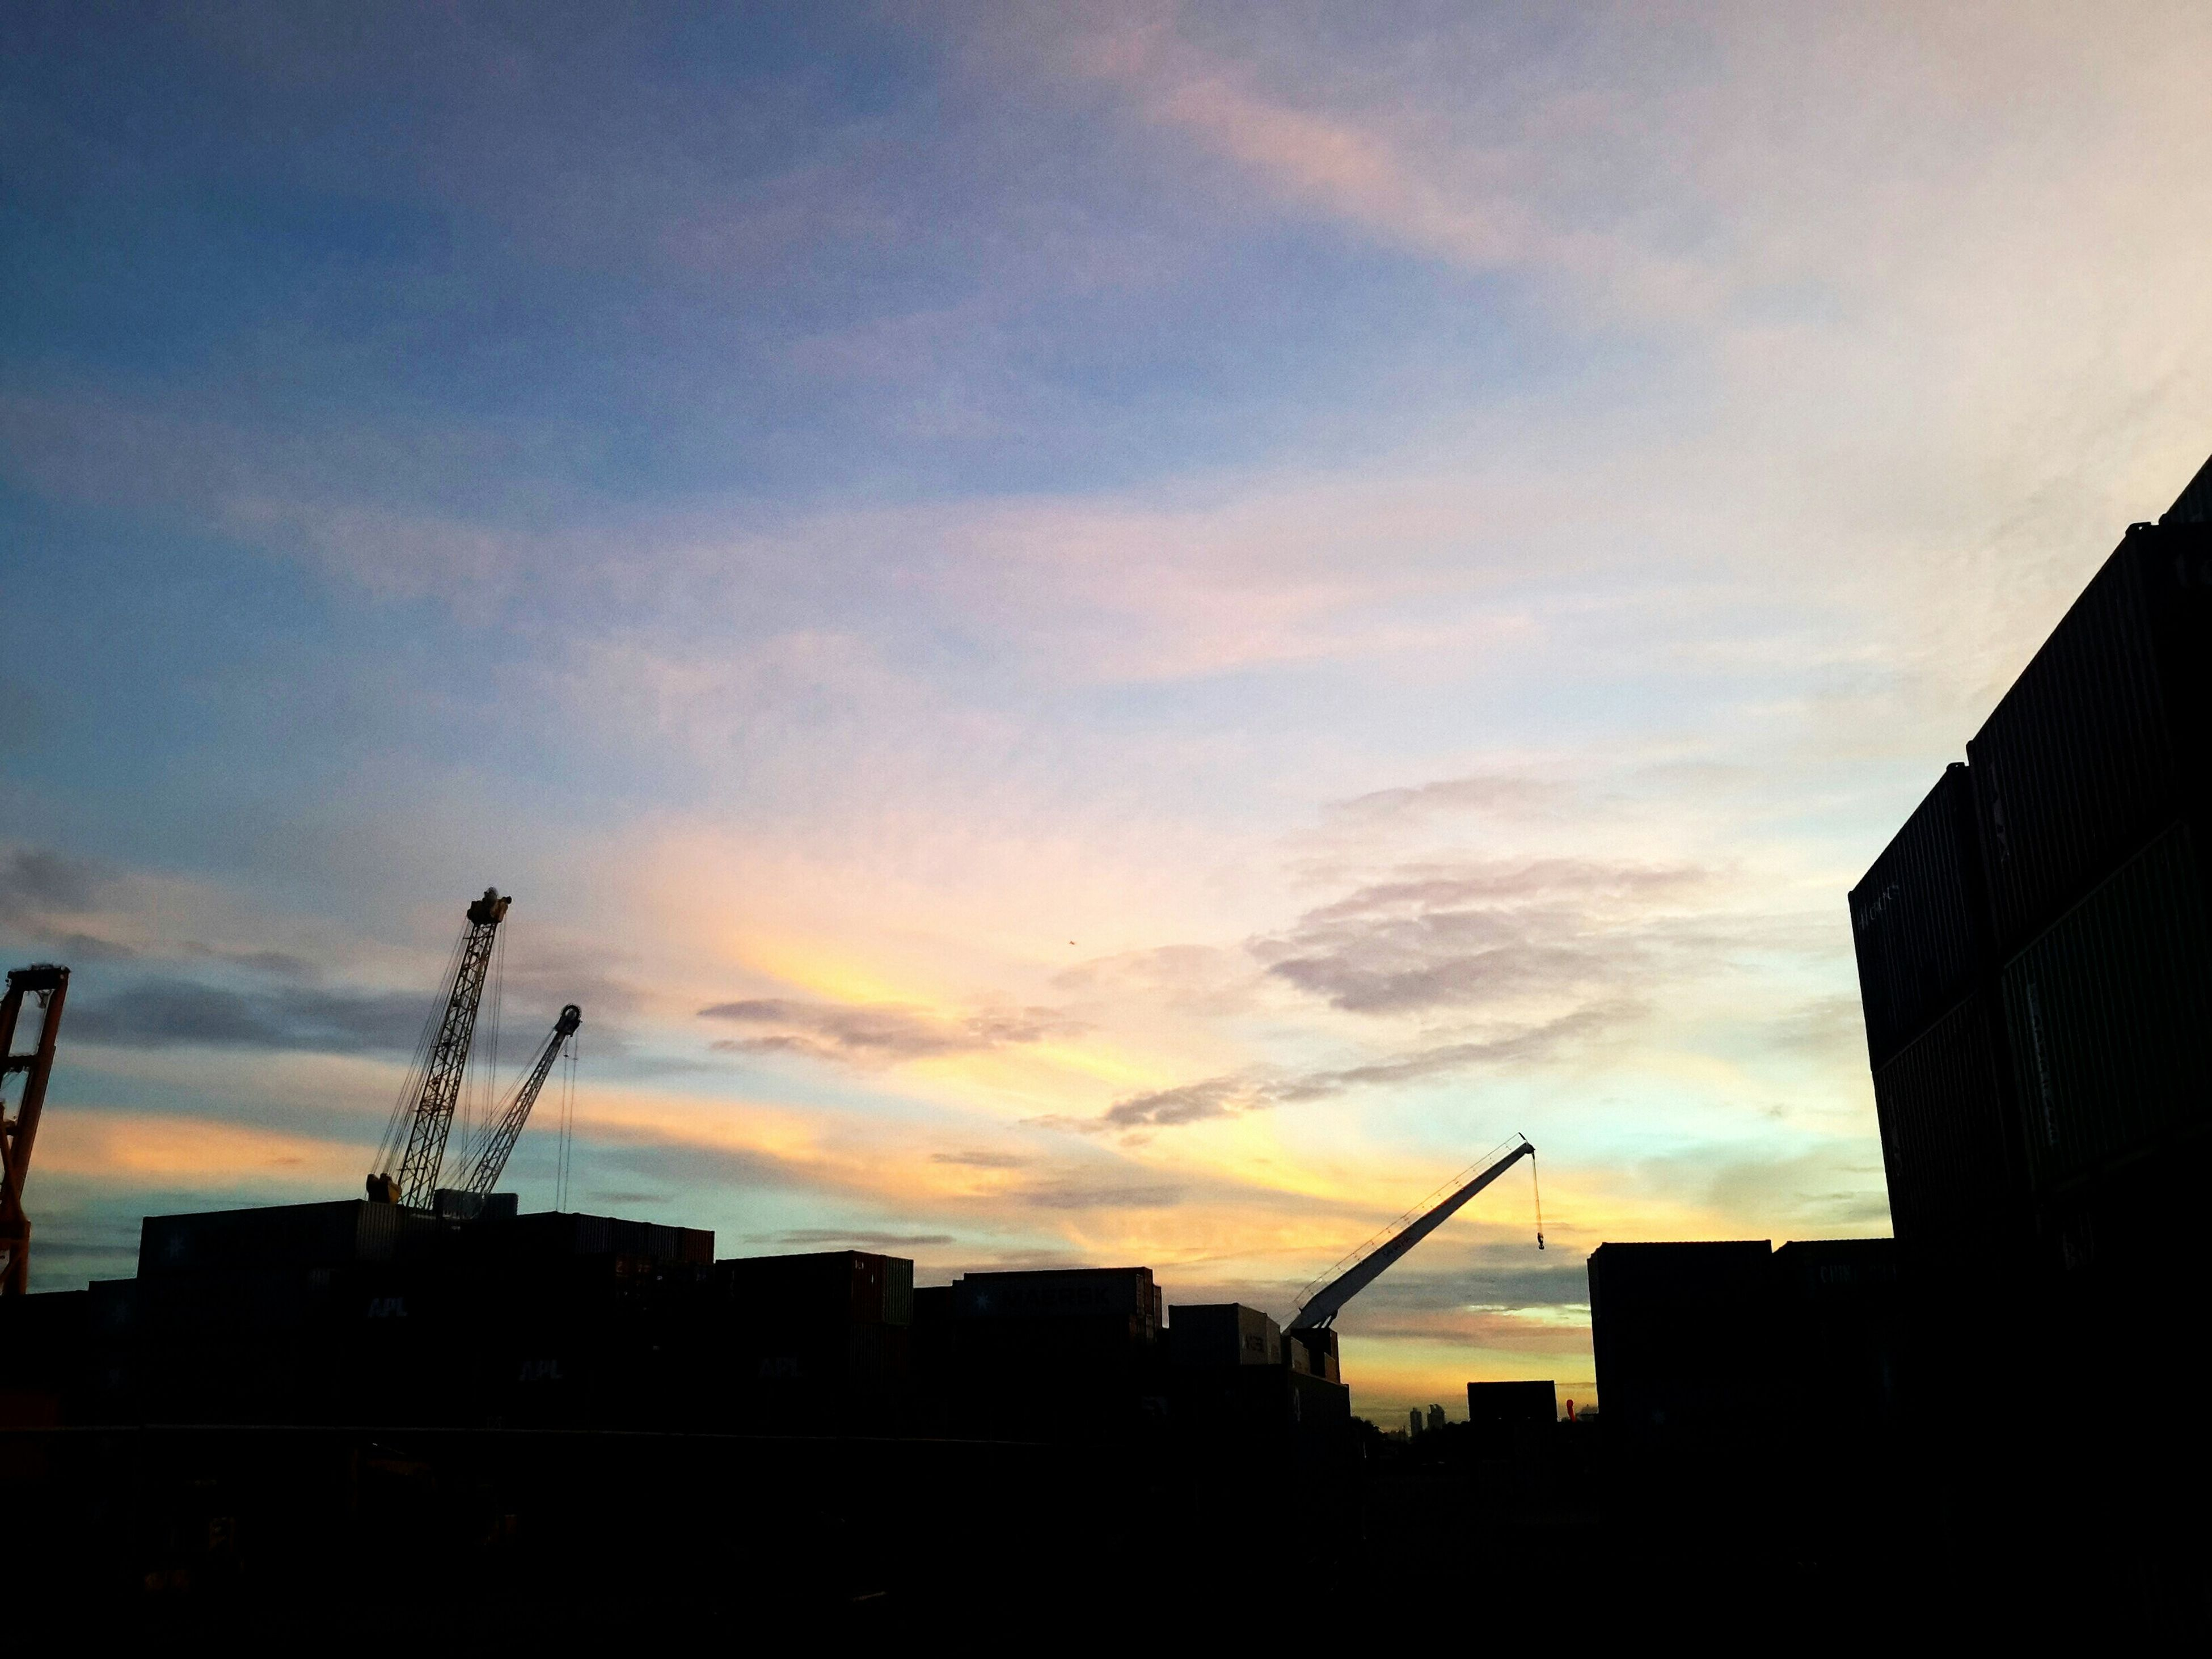 silhouette, building exterior, architecture, built structure, sunset, sky, low angle view, city, cloud - sky, construction site, building, cloud, crane - construction machinery, orange color, outdoors, crane, residential structure, development, residential building, dusk